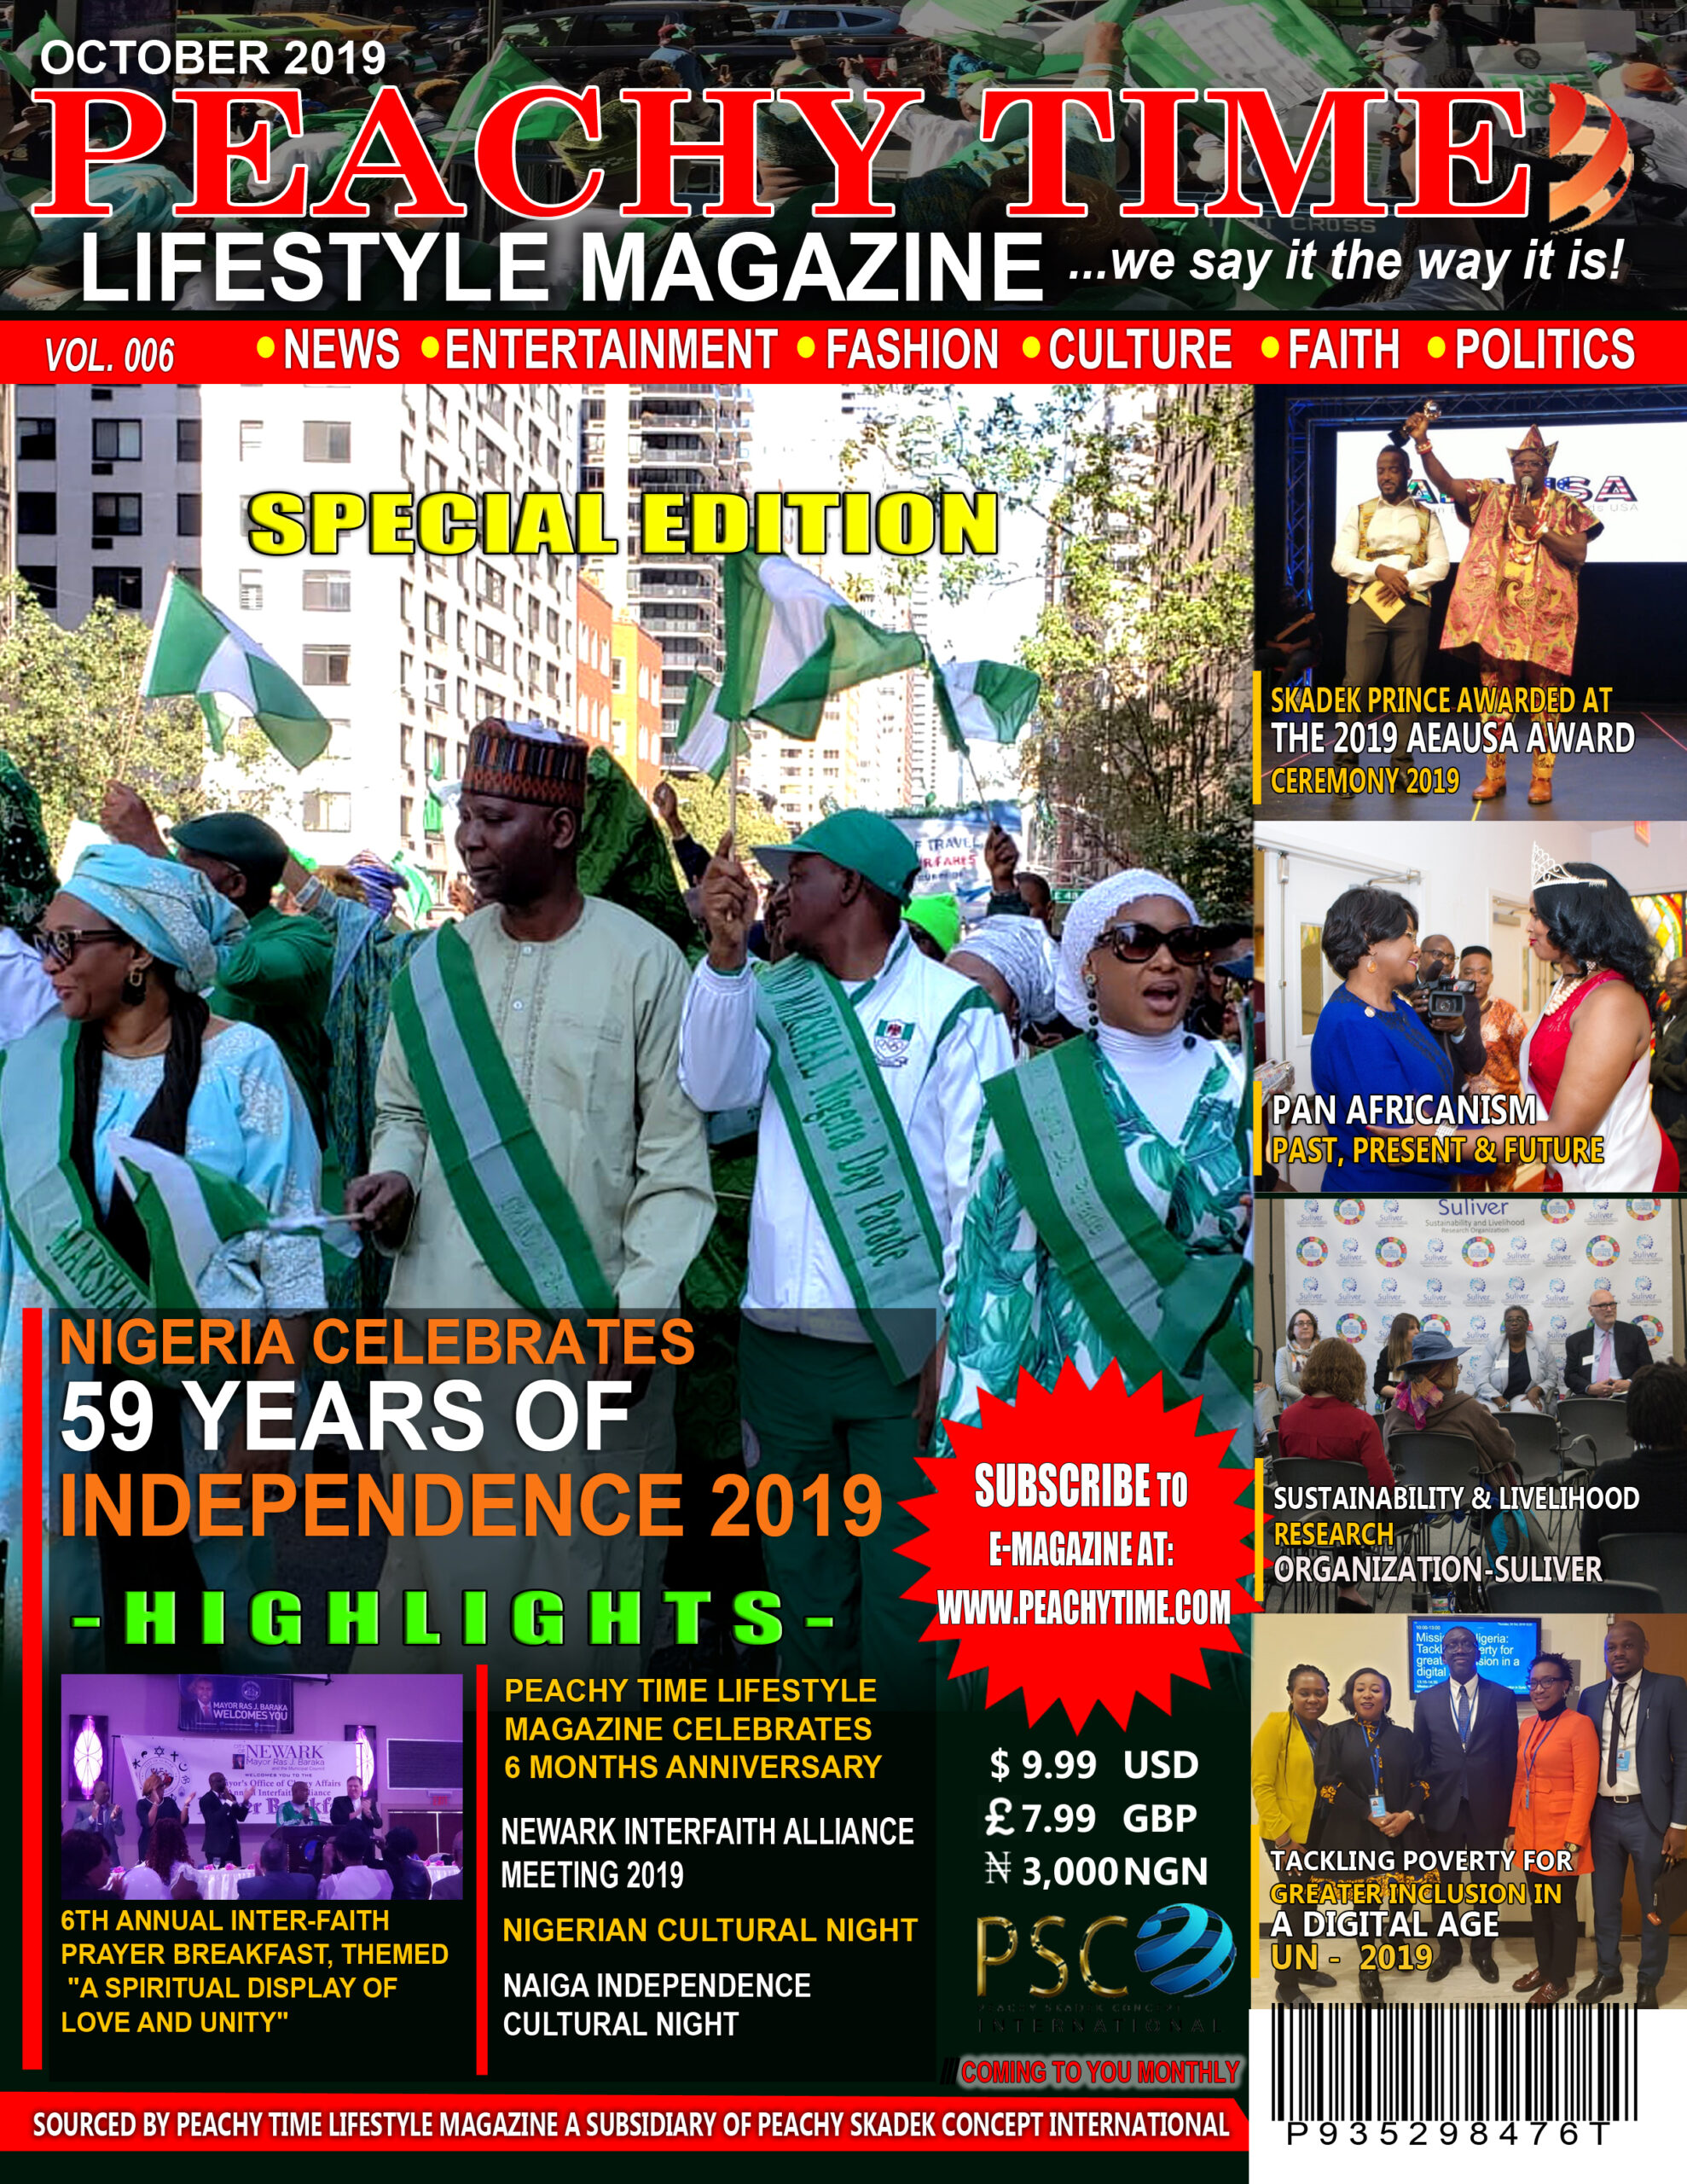 FRONT COVER - CROPPED